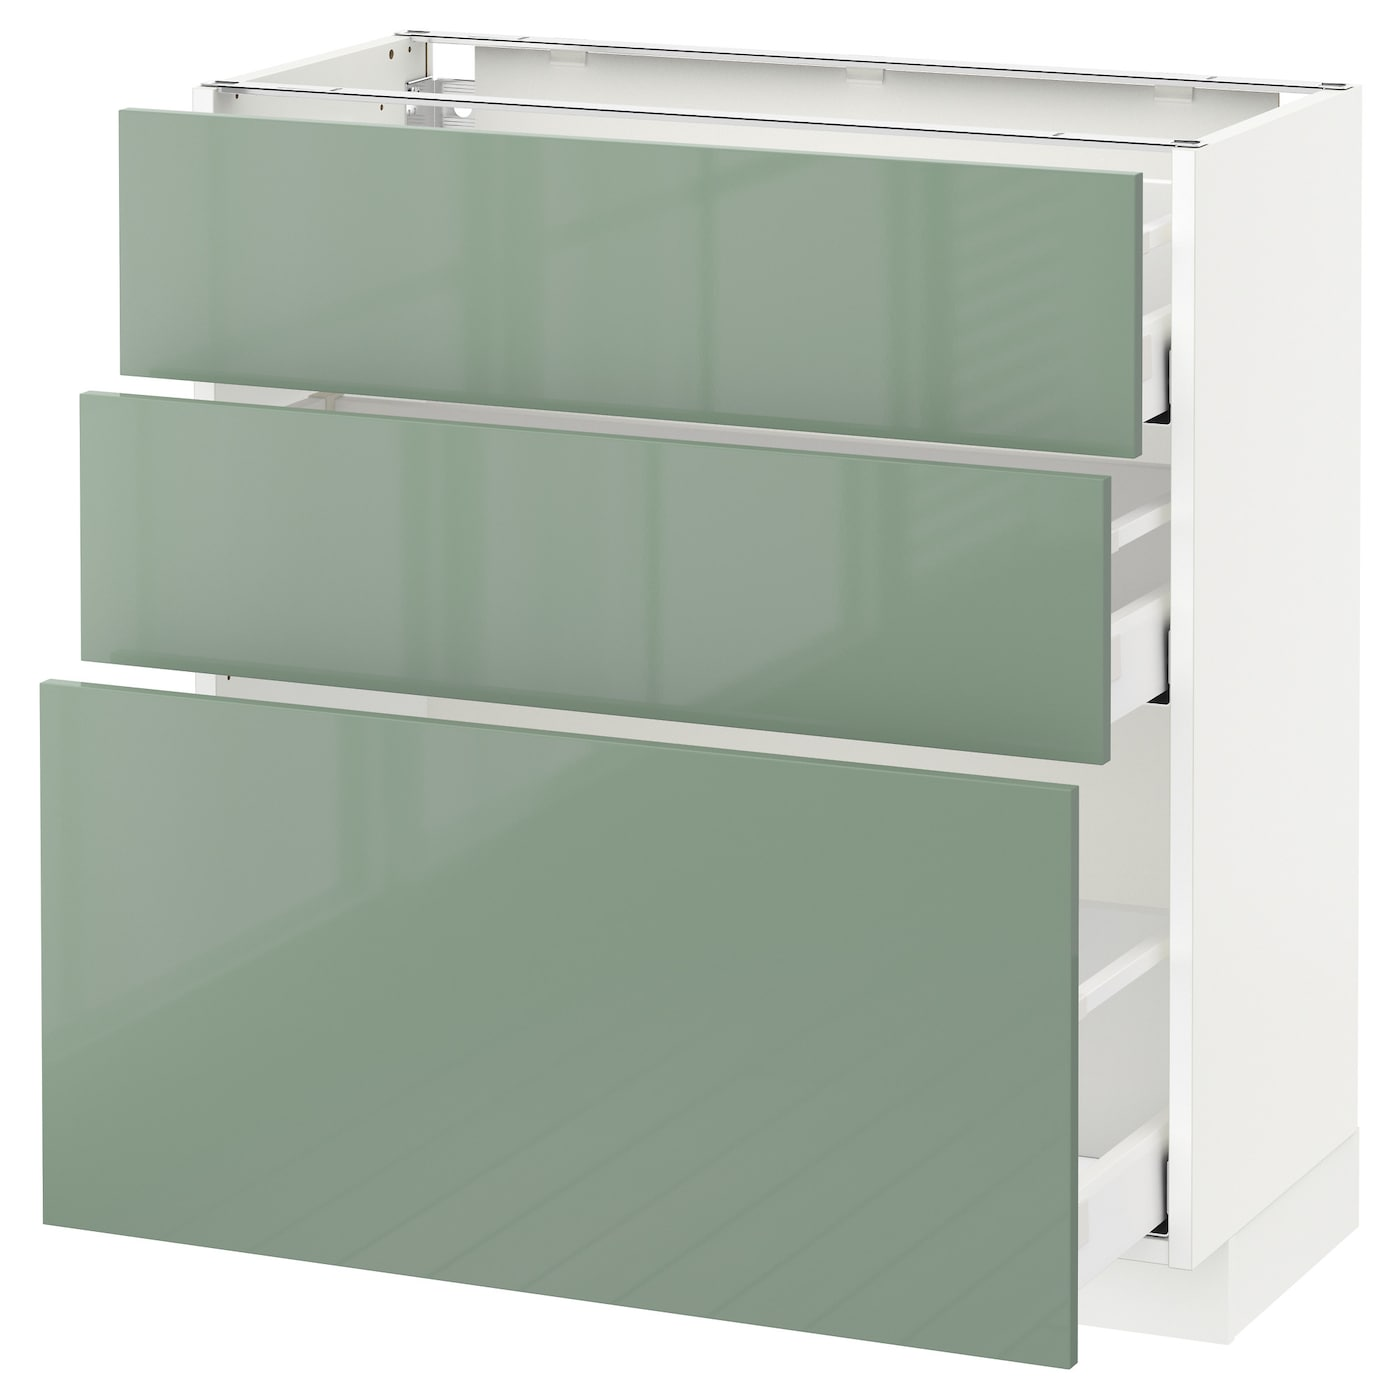 Ikea Kitchen Cabinet Lighting: METOD/MAXIMERA Base Cabinet With 3 Drawers White/kallarp